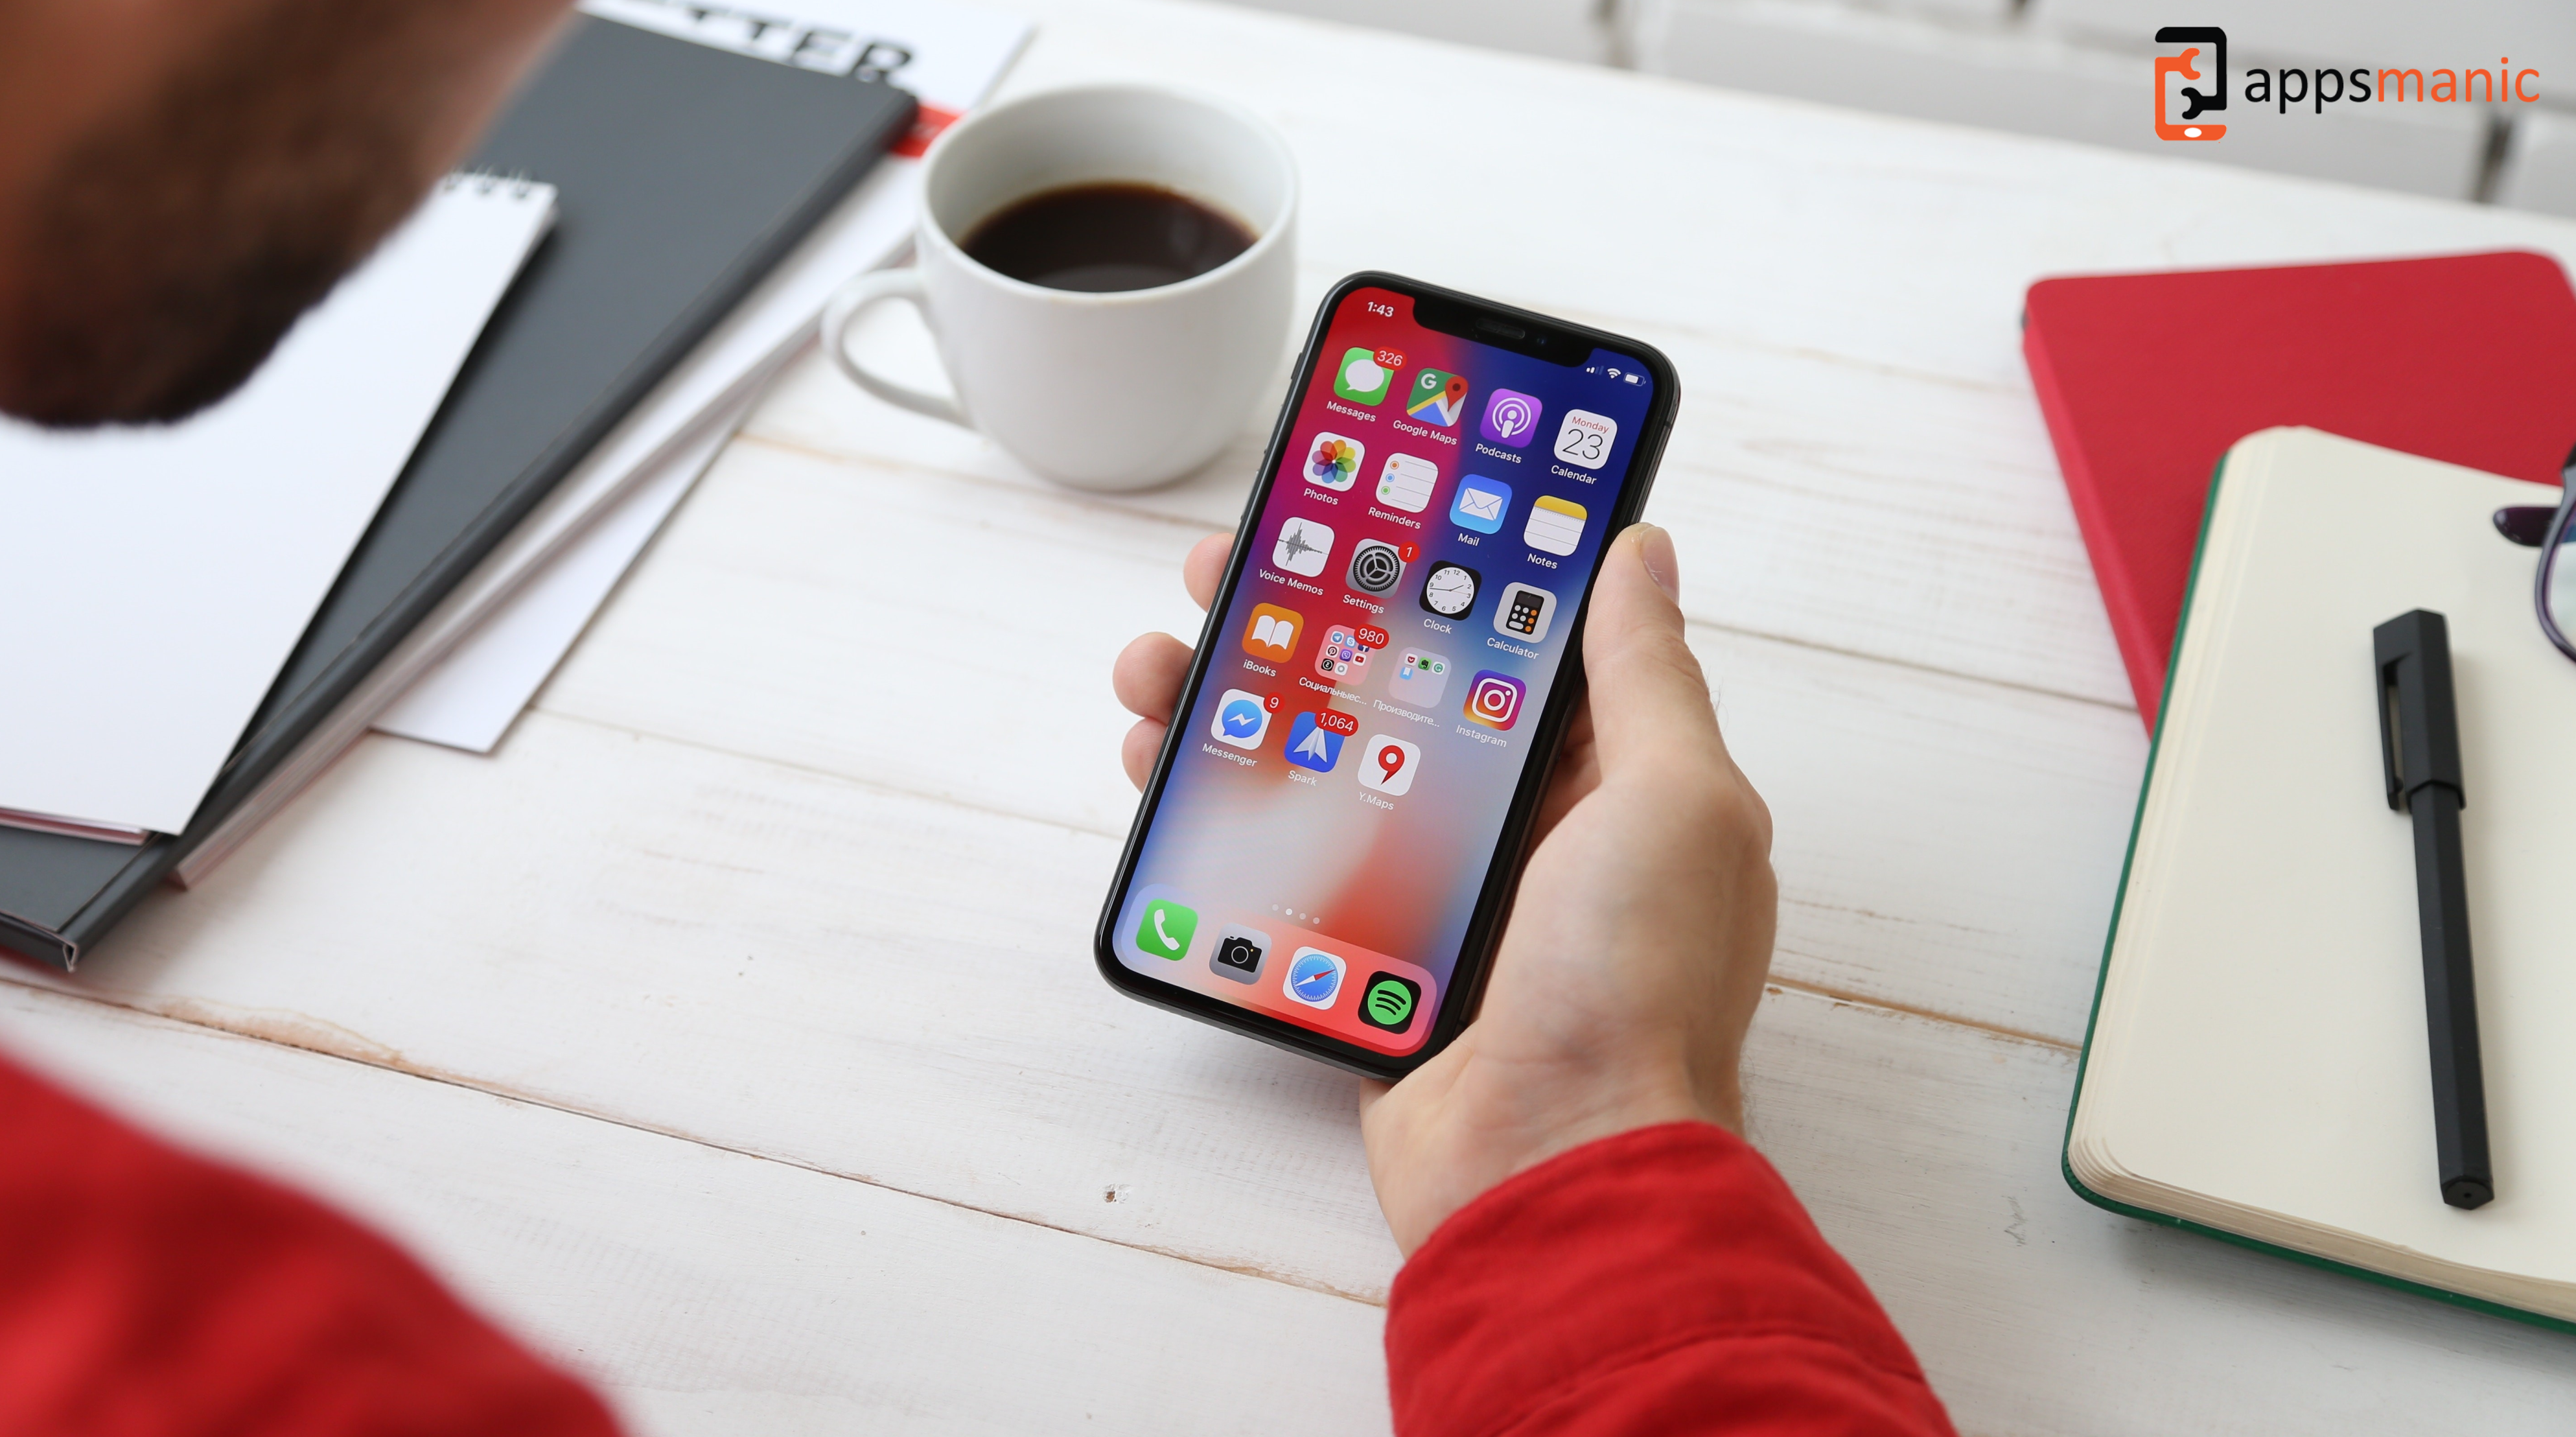 application development in the ios environment